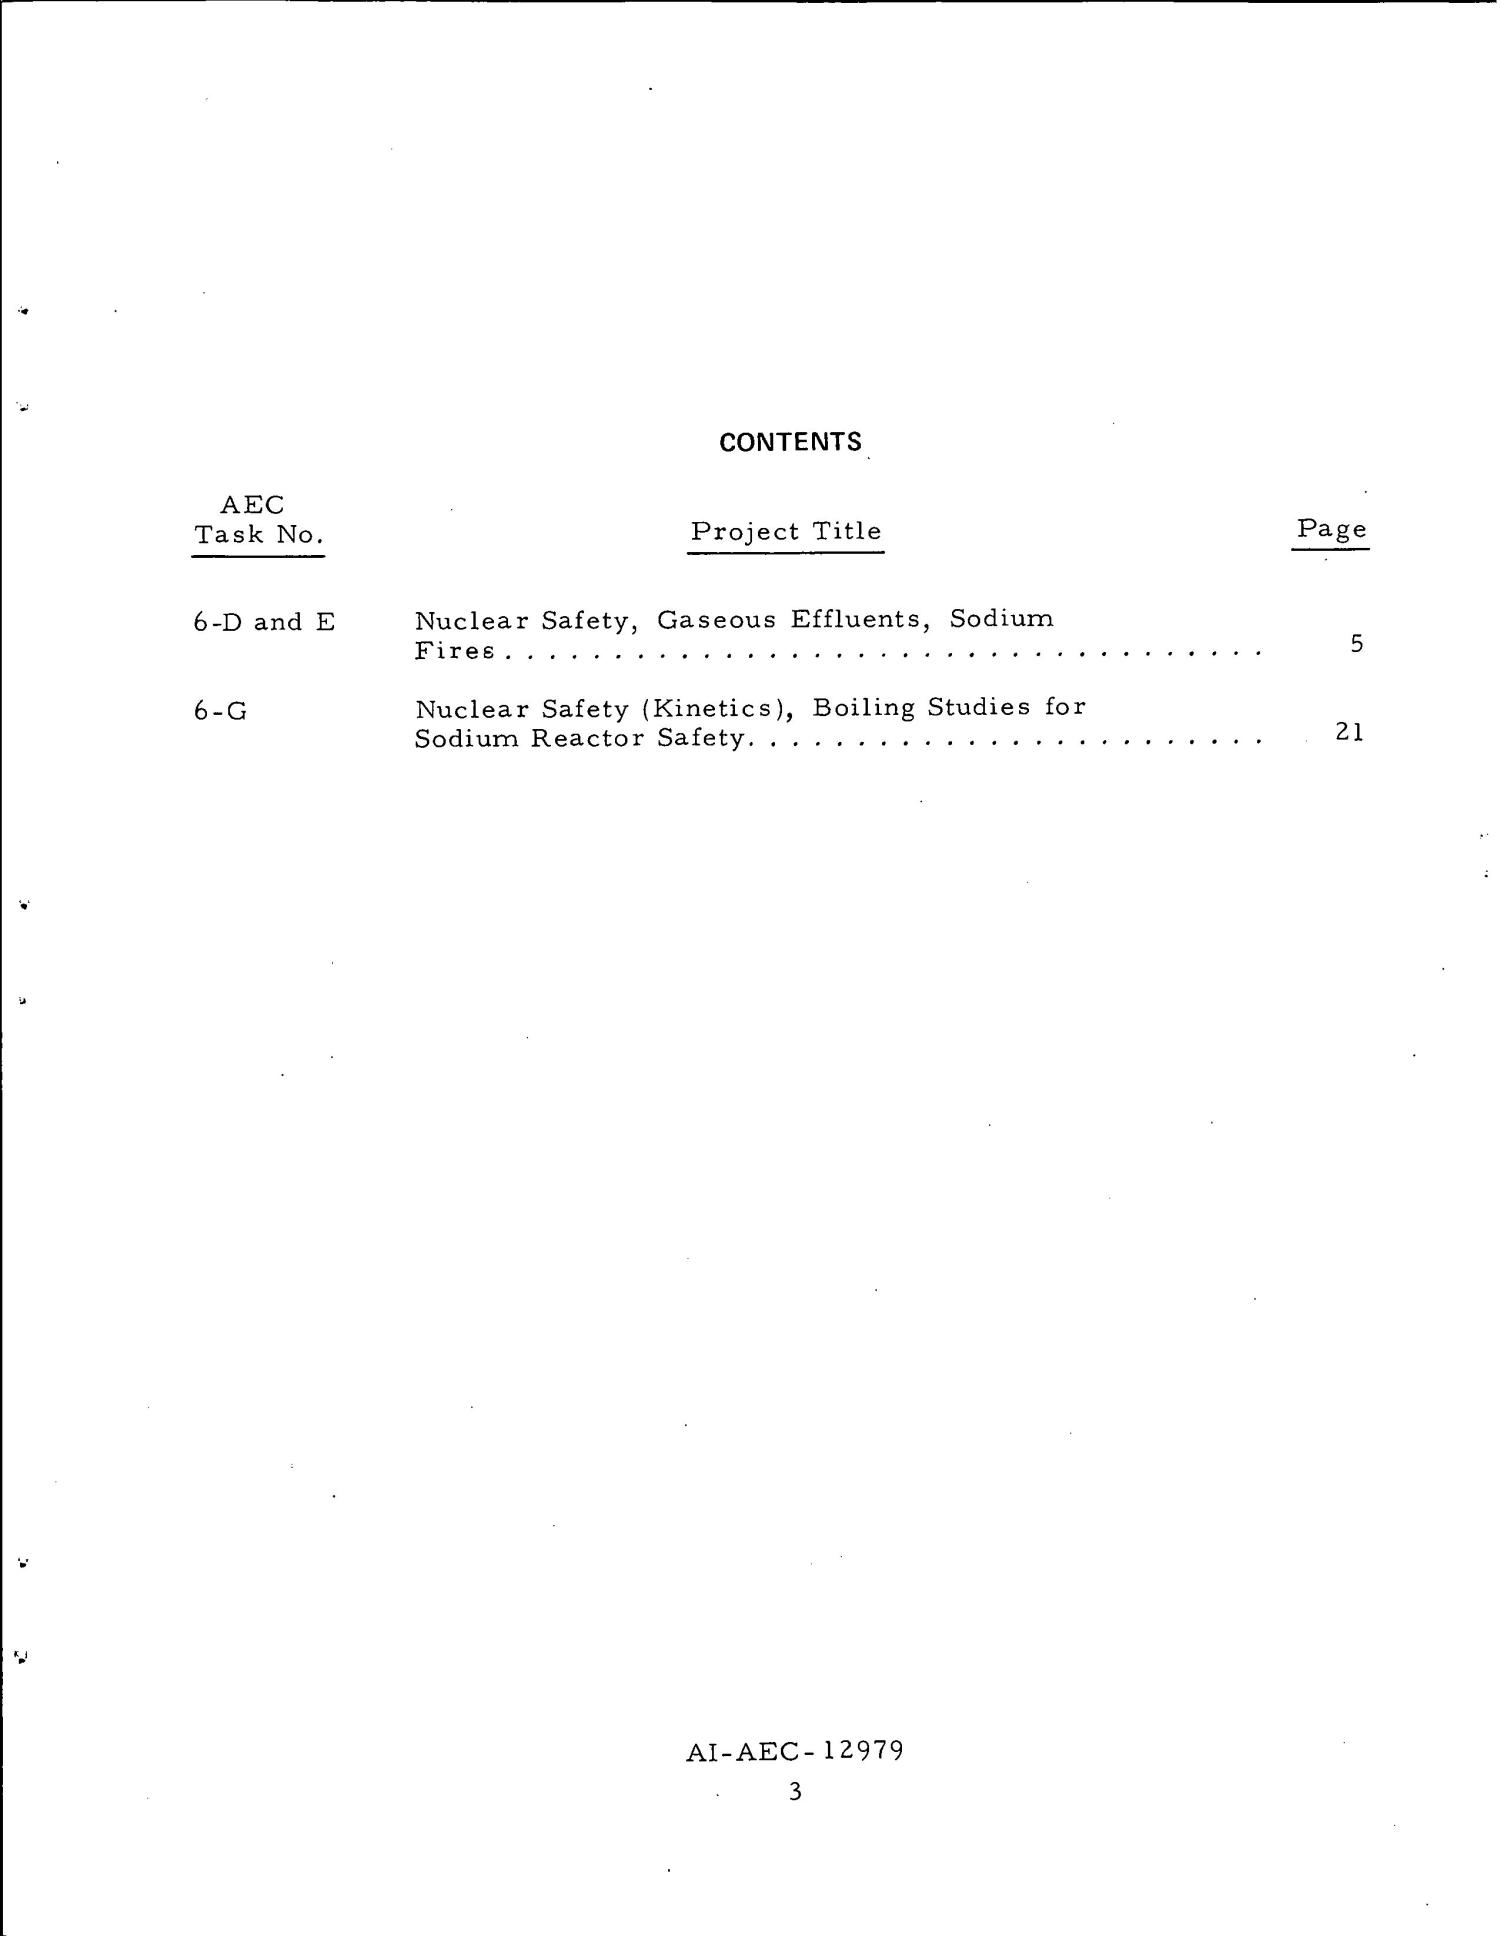 LMFBR SAFETY PROGRAMS. Quarterly Technical Progress Report, July-- September 1970.                                                                                                      [Sequence #]: 7 of 44